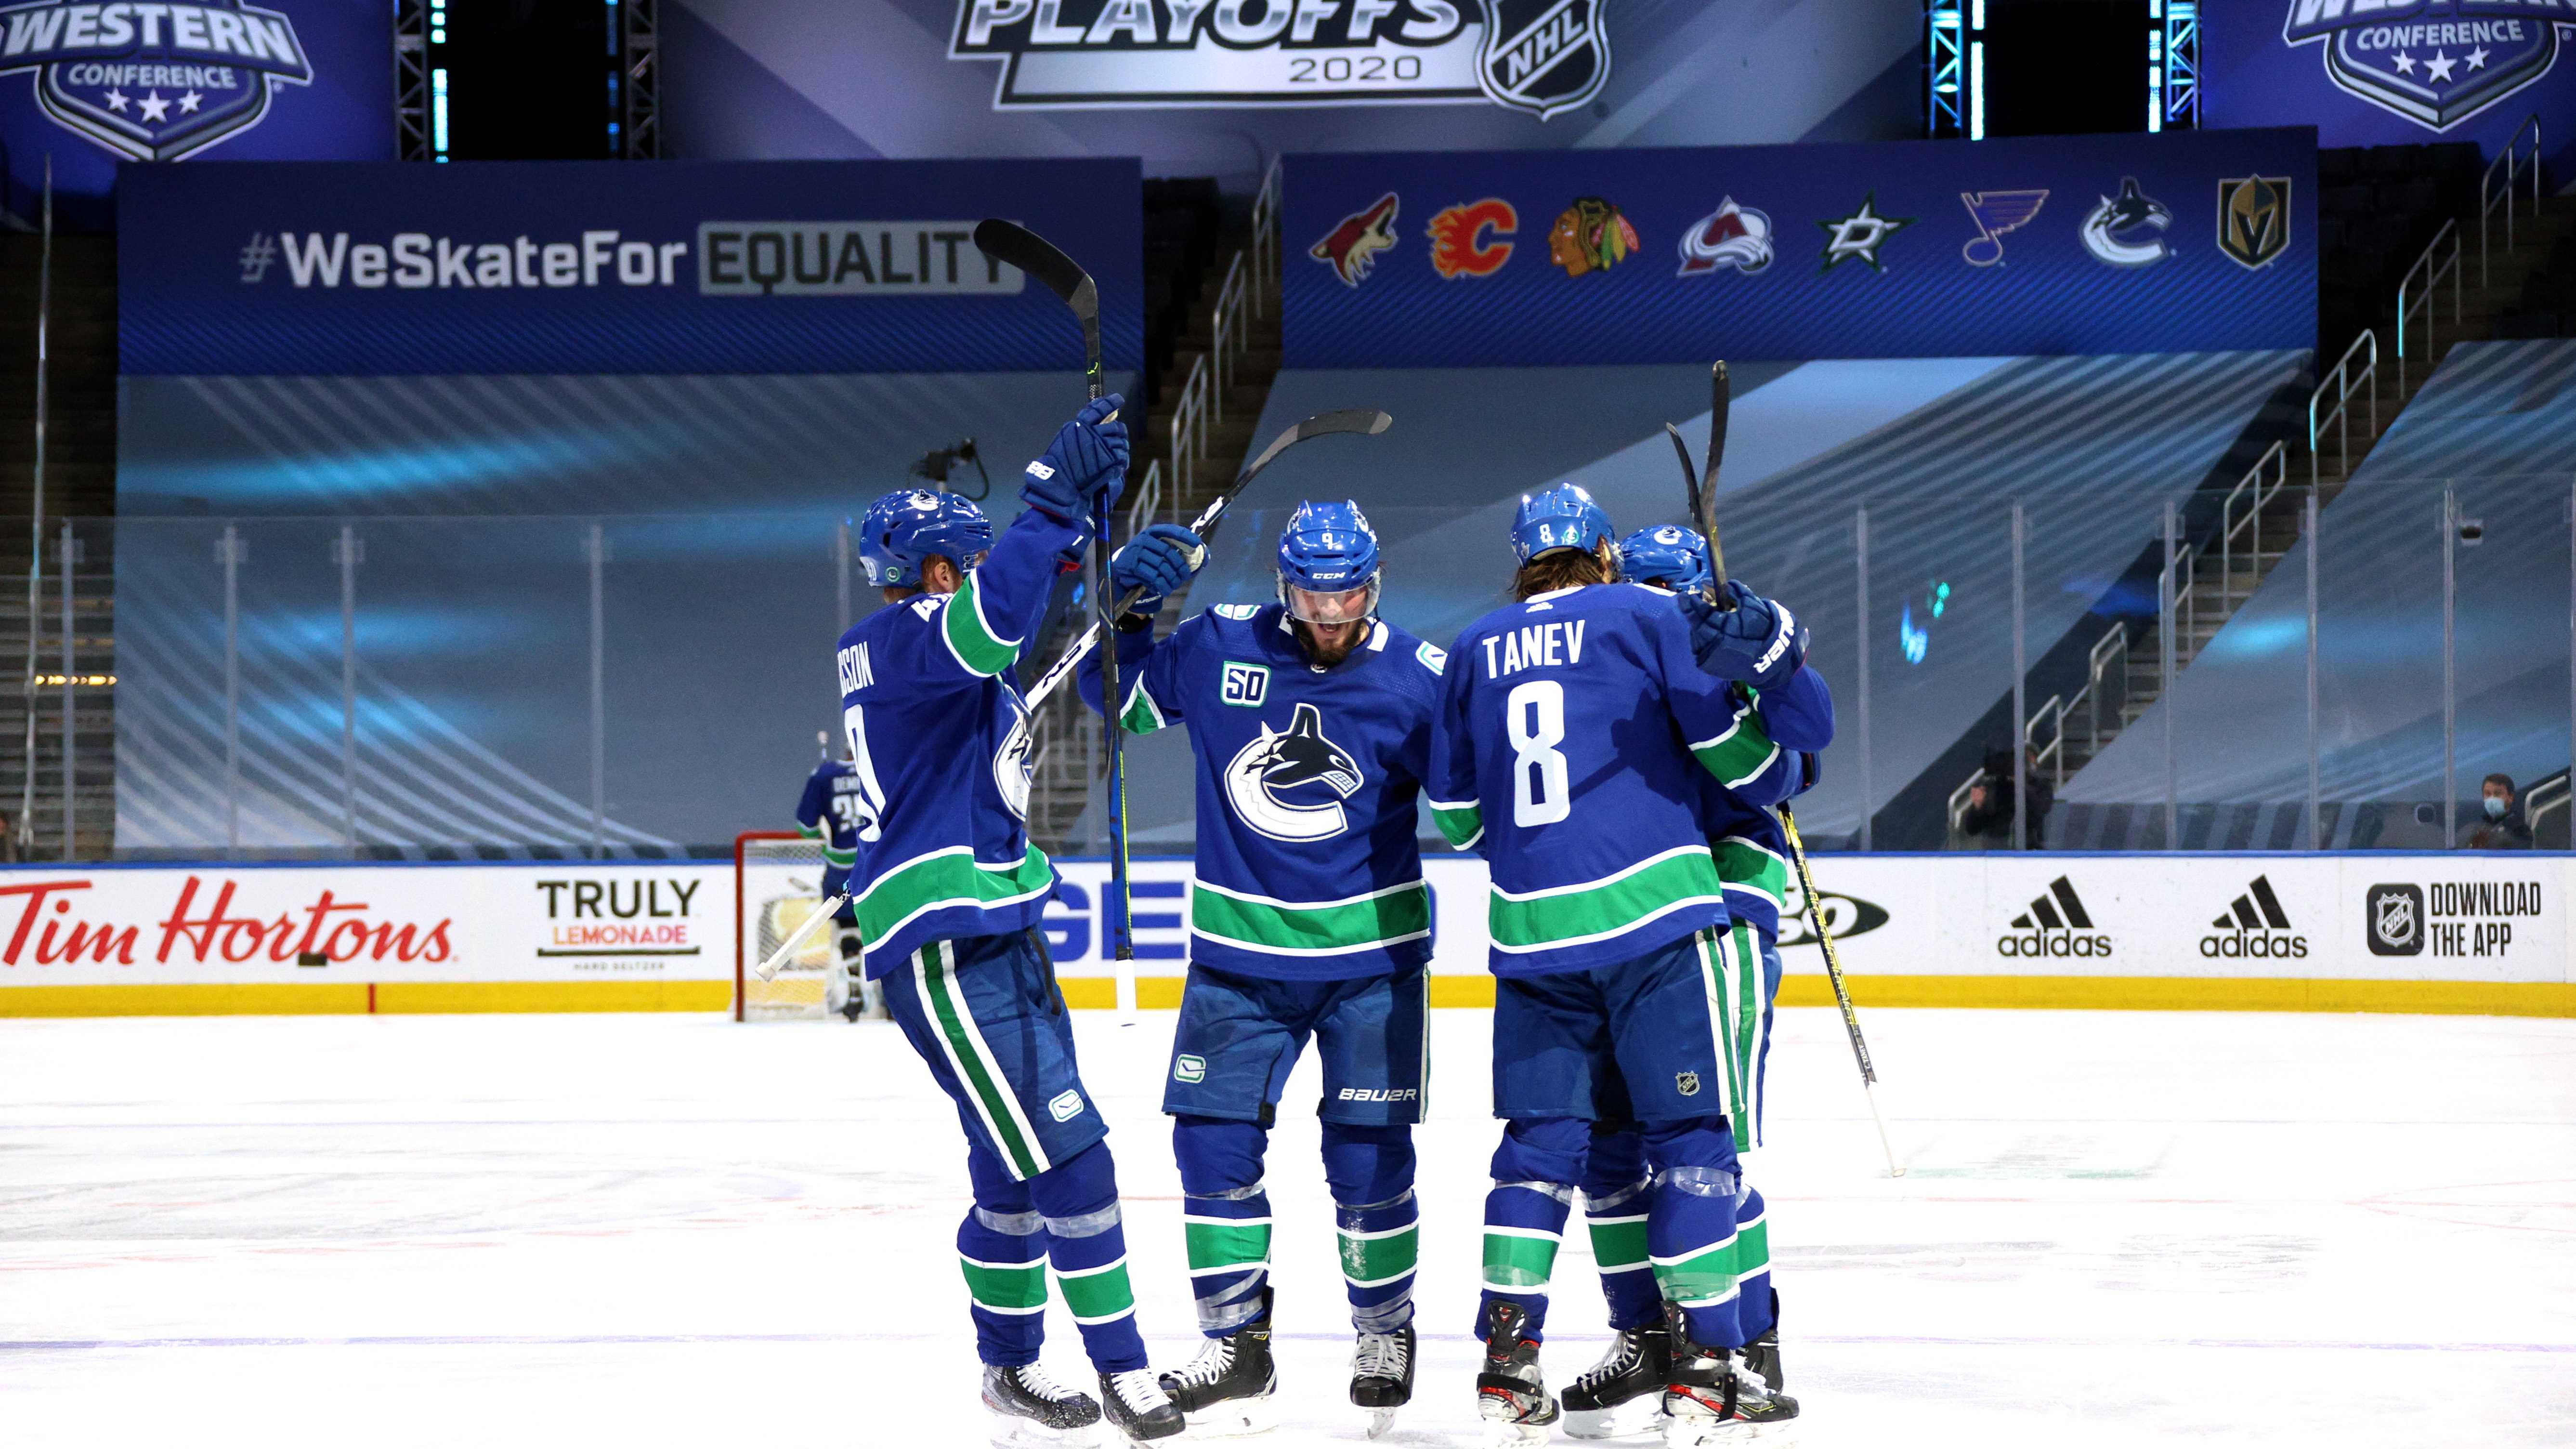 Canucks Golden Knights Stream 2020 Nhl Stanley Cup Second Round